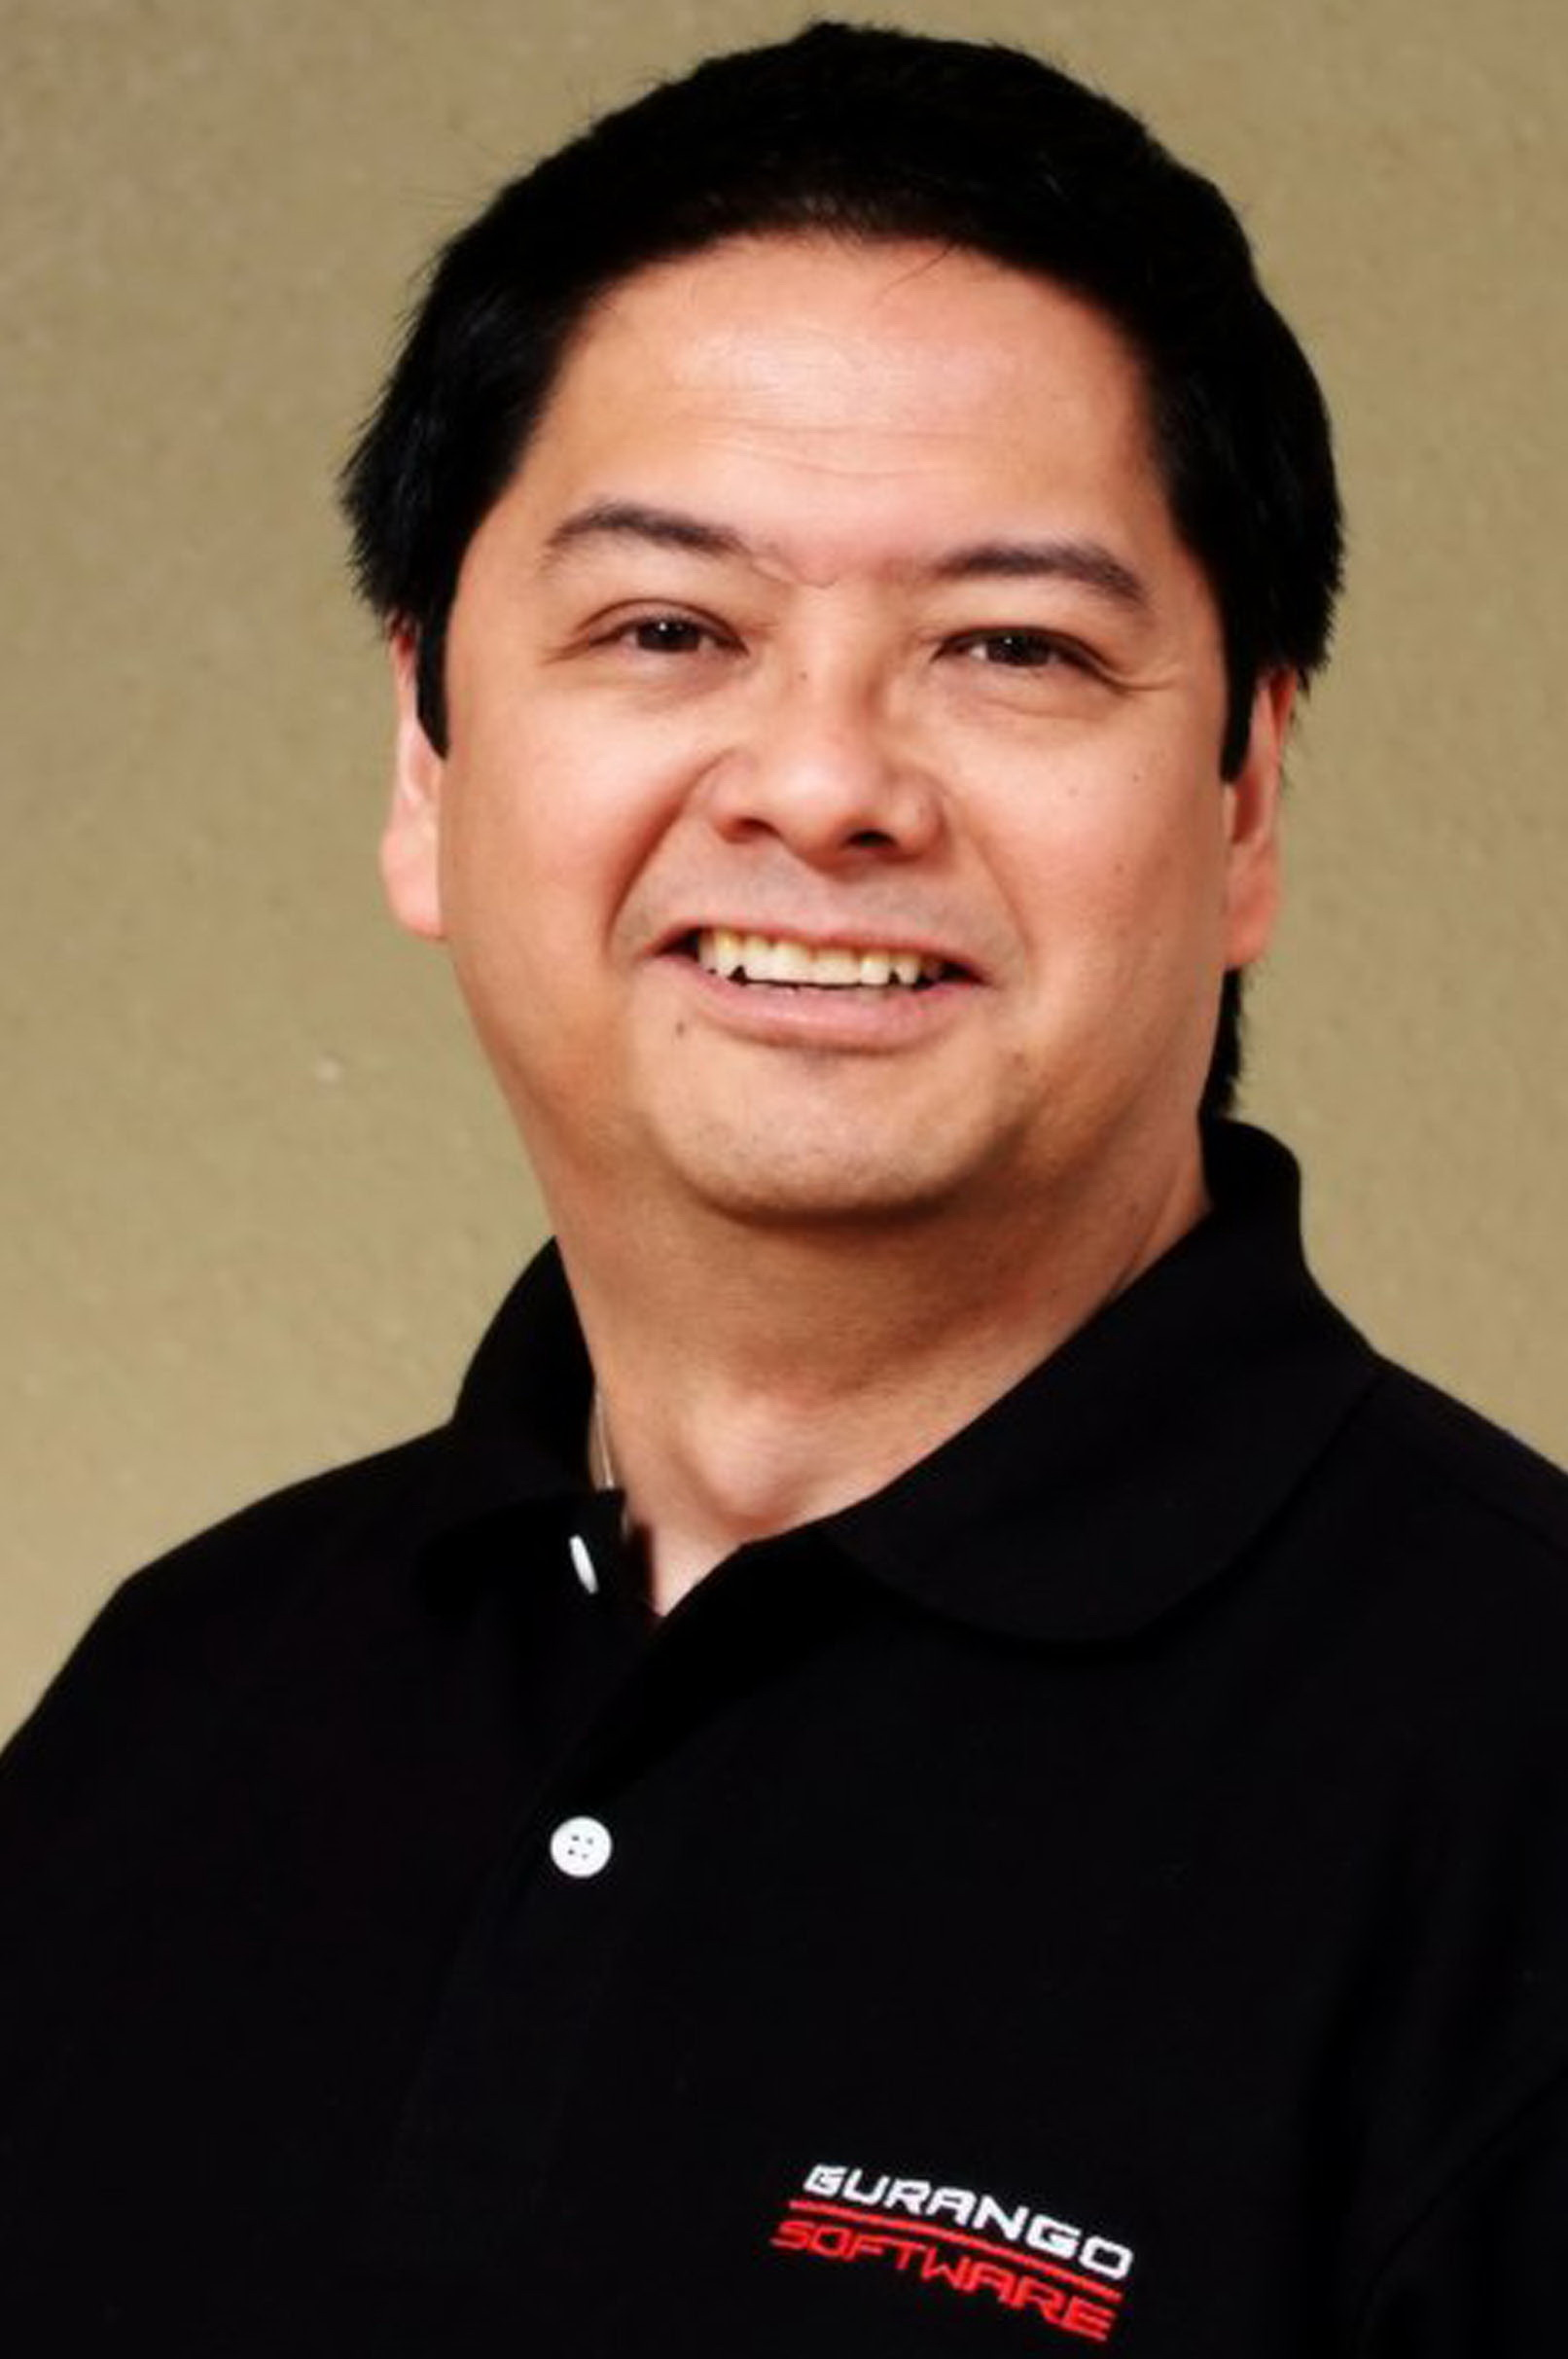 Mr. Joey Gurango, the Founder and Managing Director of Gurango Software Corporation.